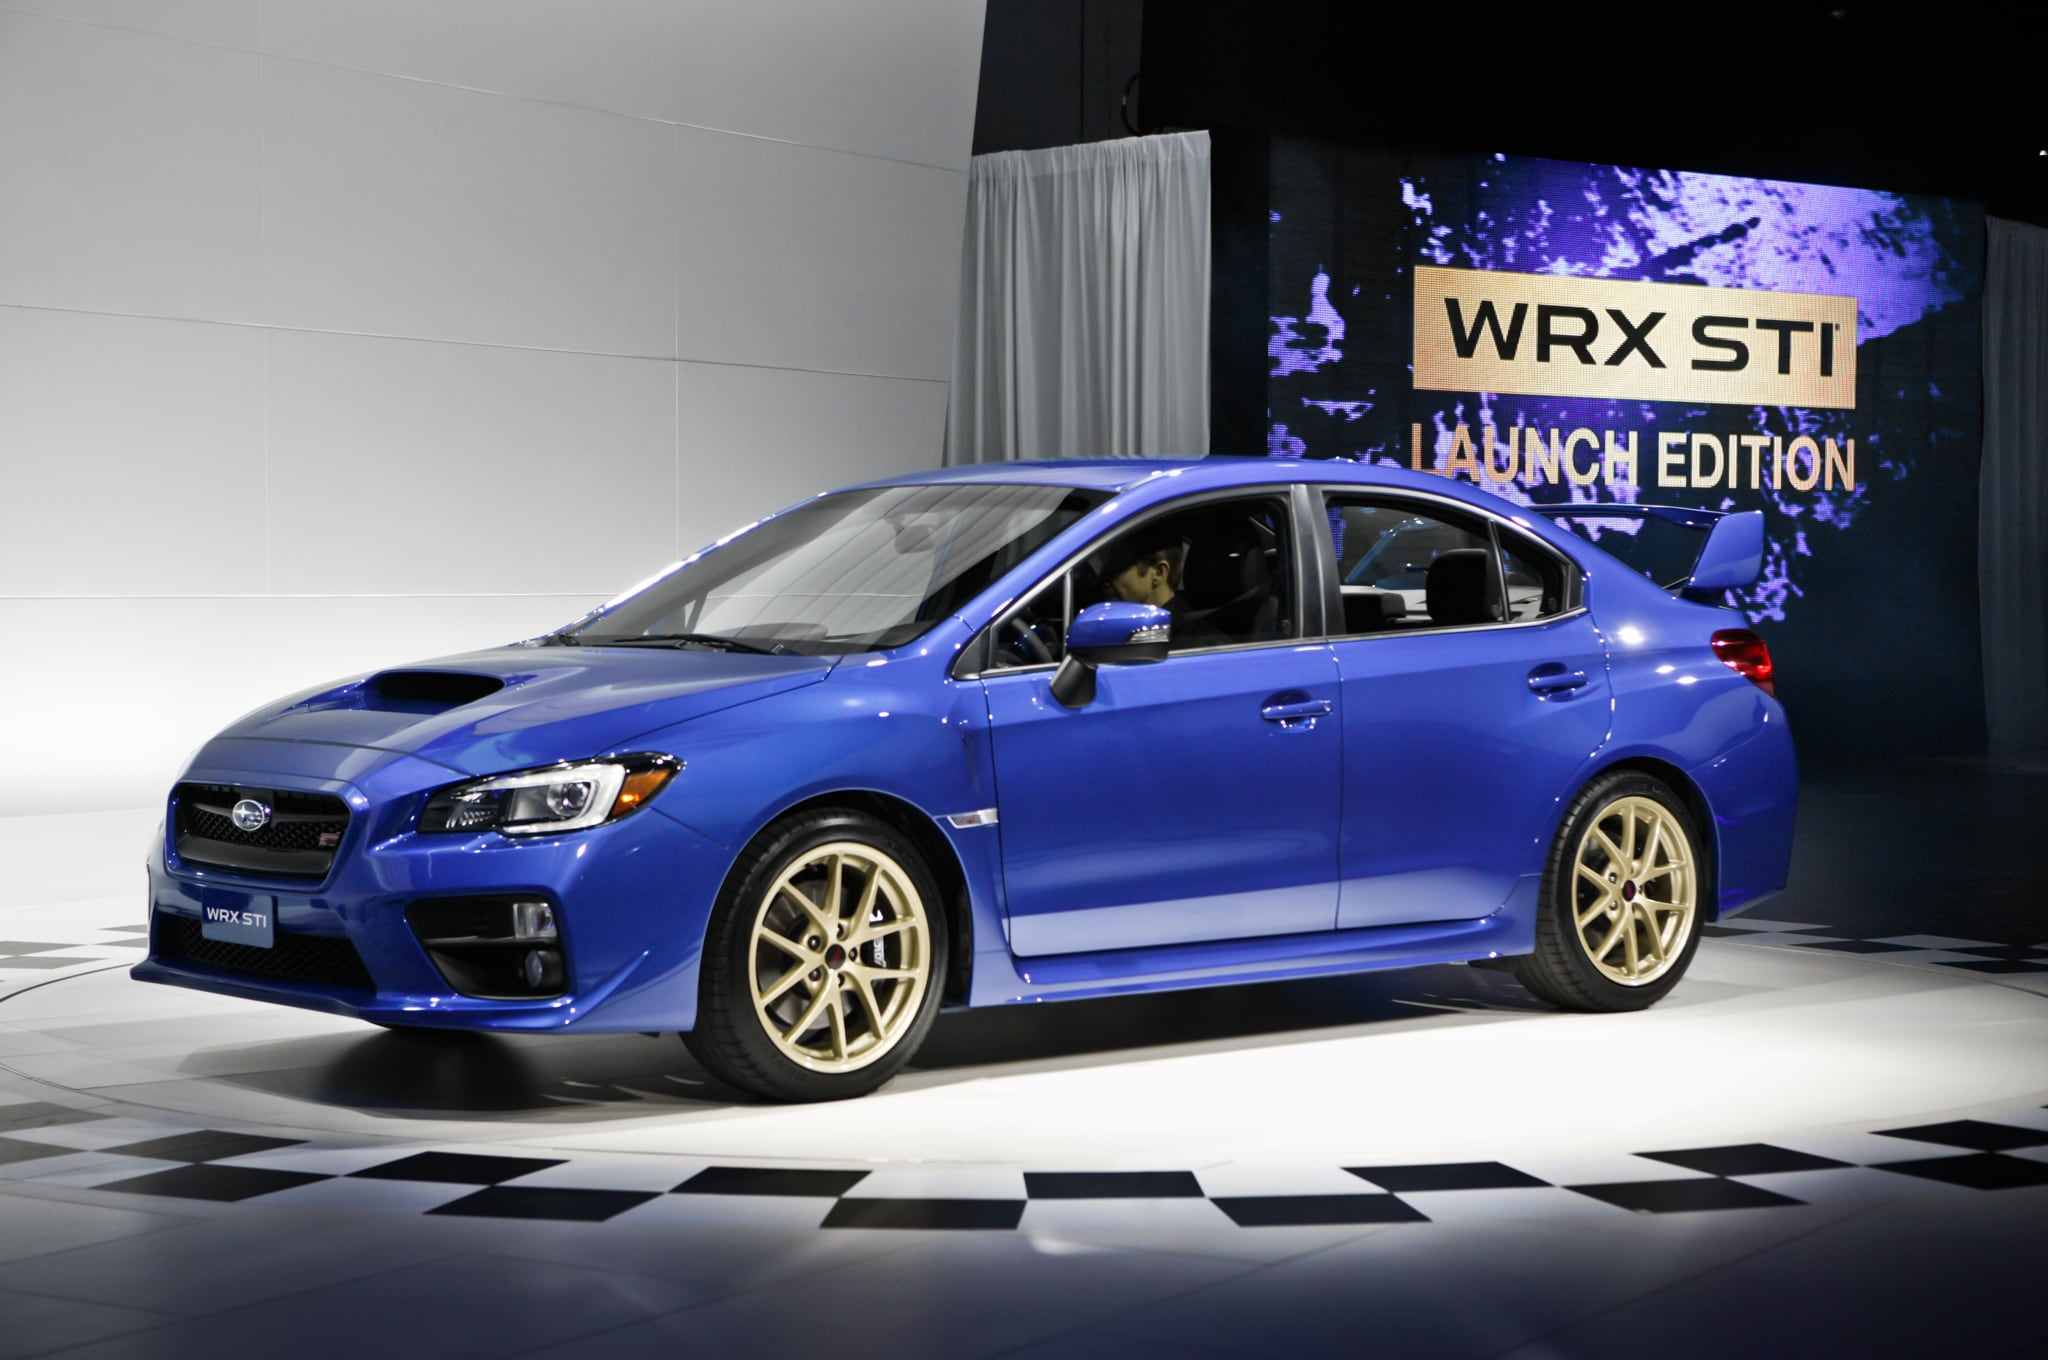 2015 subaru wrx overview nh subaru dealer pricing features models colors photos news. Black Bedroom Furniture Sets. Home Design Ideas